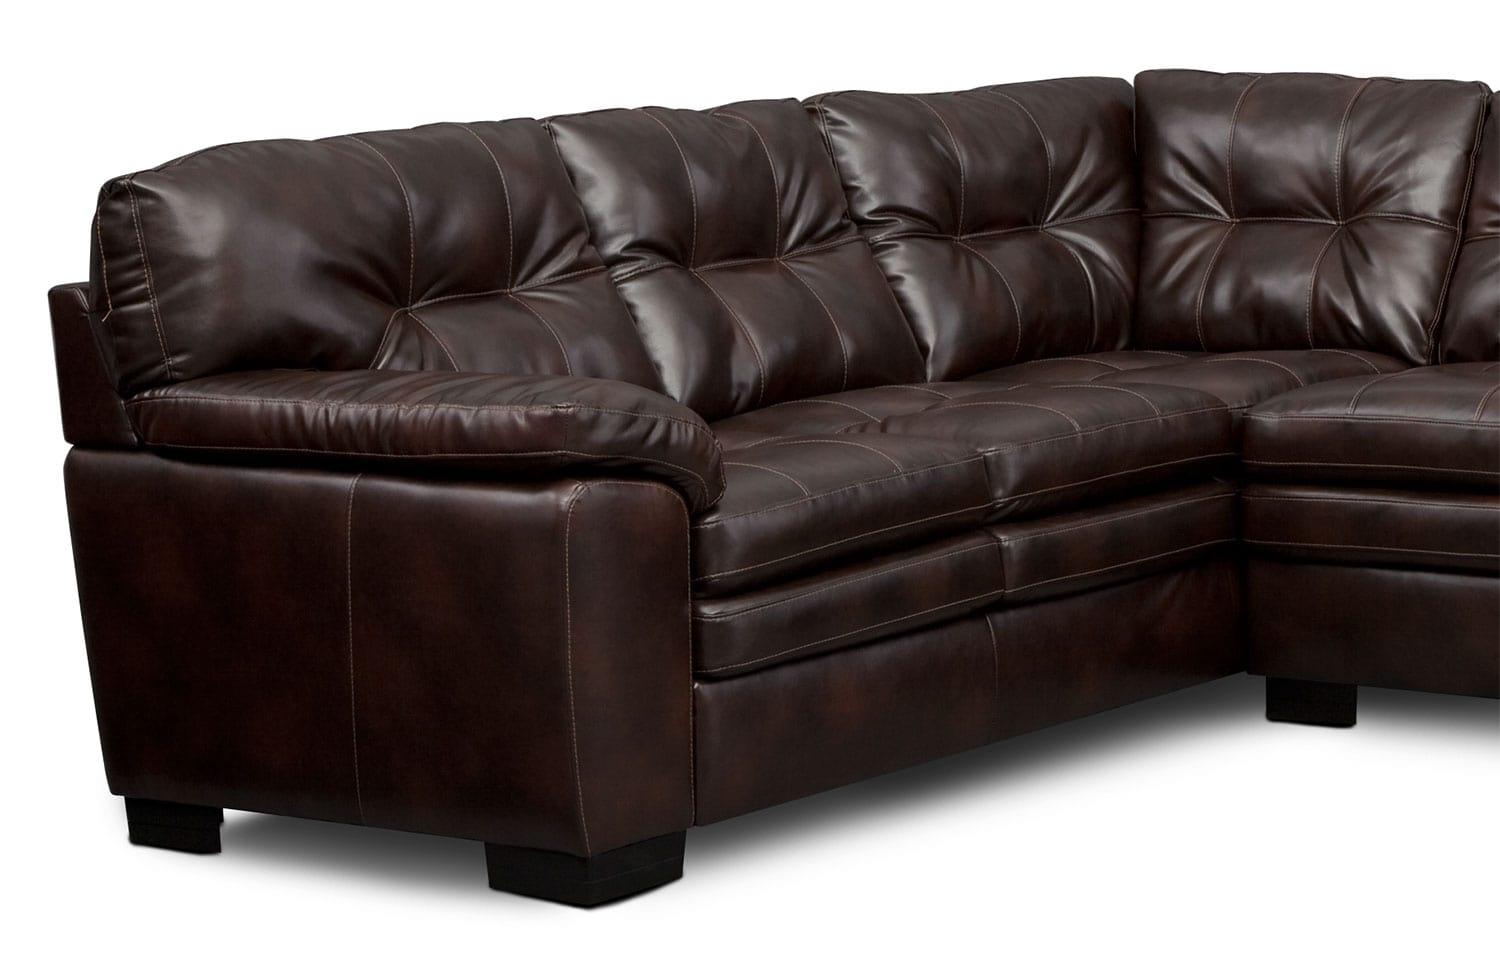 Magnum 2 Piece Sectional With Right Facing Sofa Brown